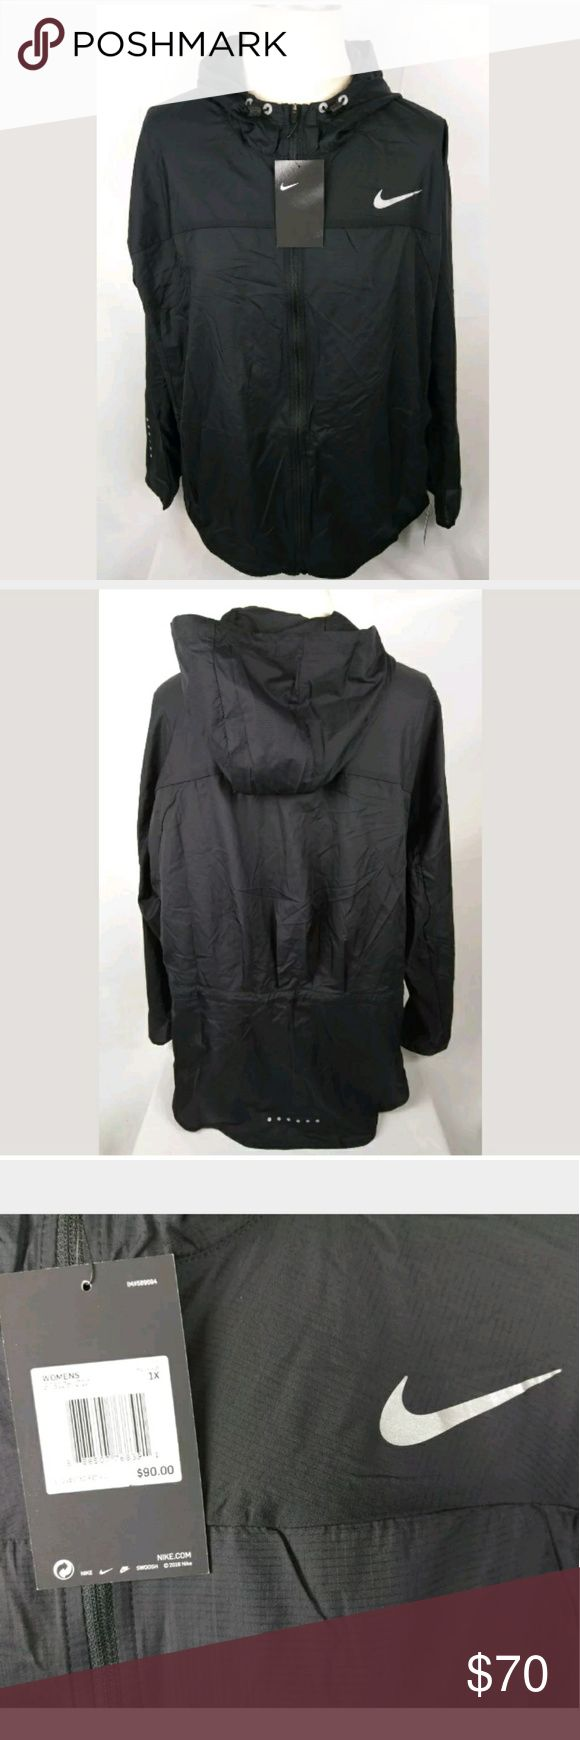 Nike Women's Impossibly Light Running Jacket 1X Nike Women's running jacket new with tags great condition size 1x MSRP is $90 made of 100% nylon and made in Vietnam Nike Jackets & Coats